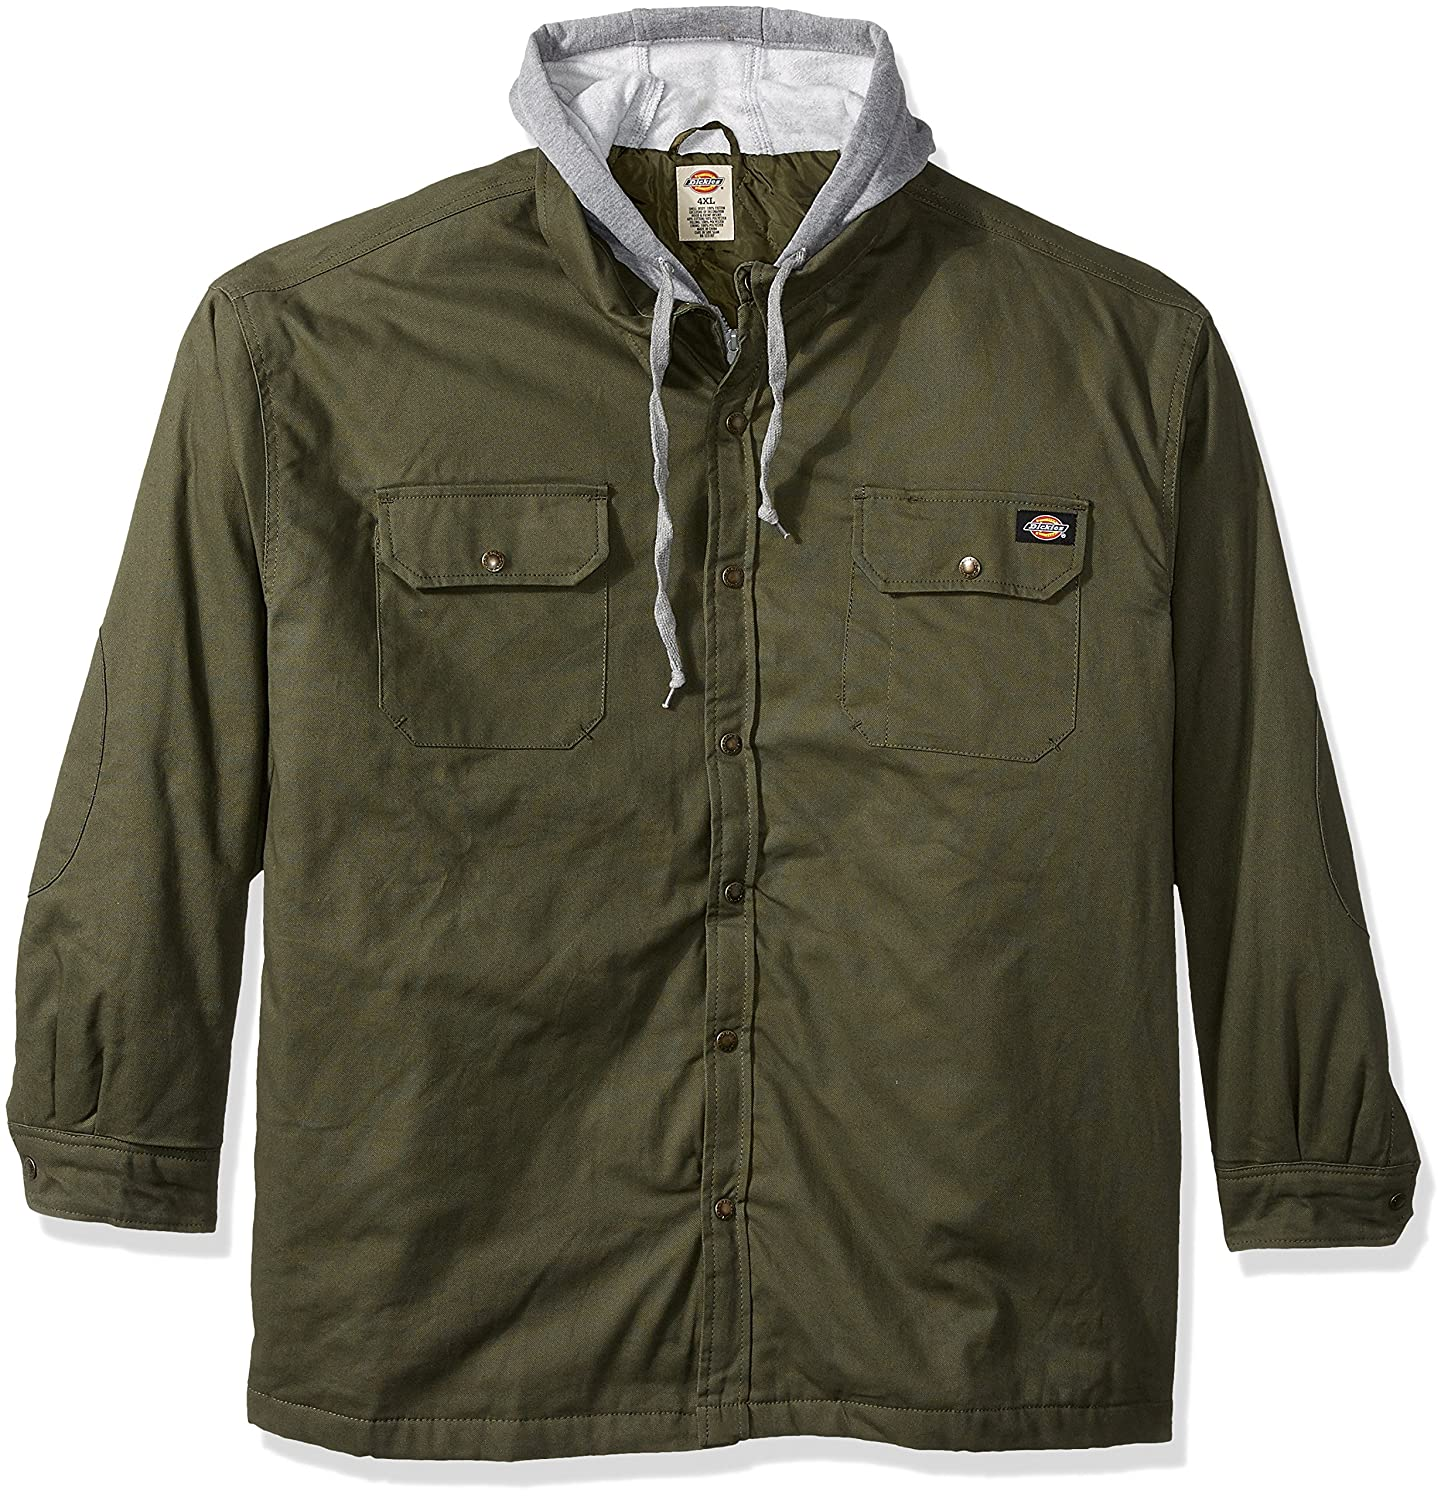 Dickies Mens Canvas Shirt Jacket with Quilted Lining Dickie/'s Men/'s Tops 3820